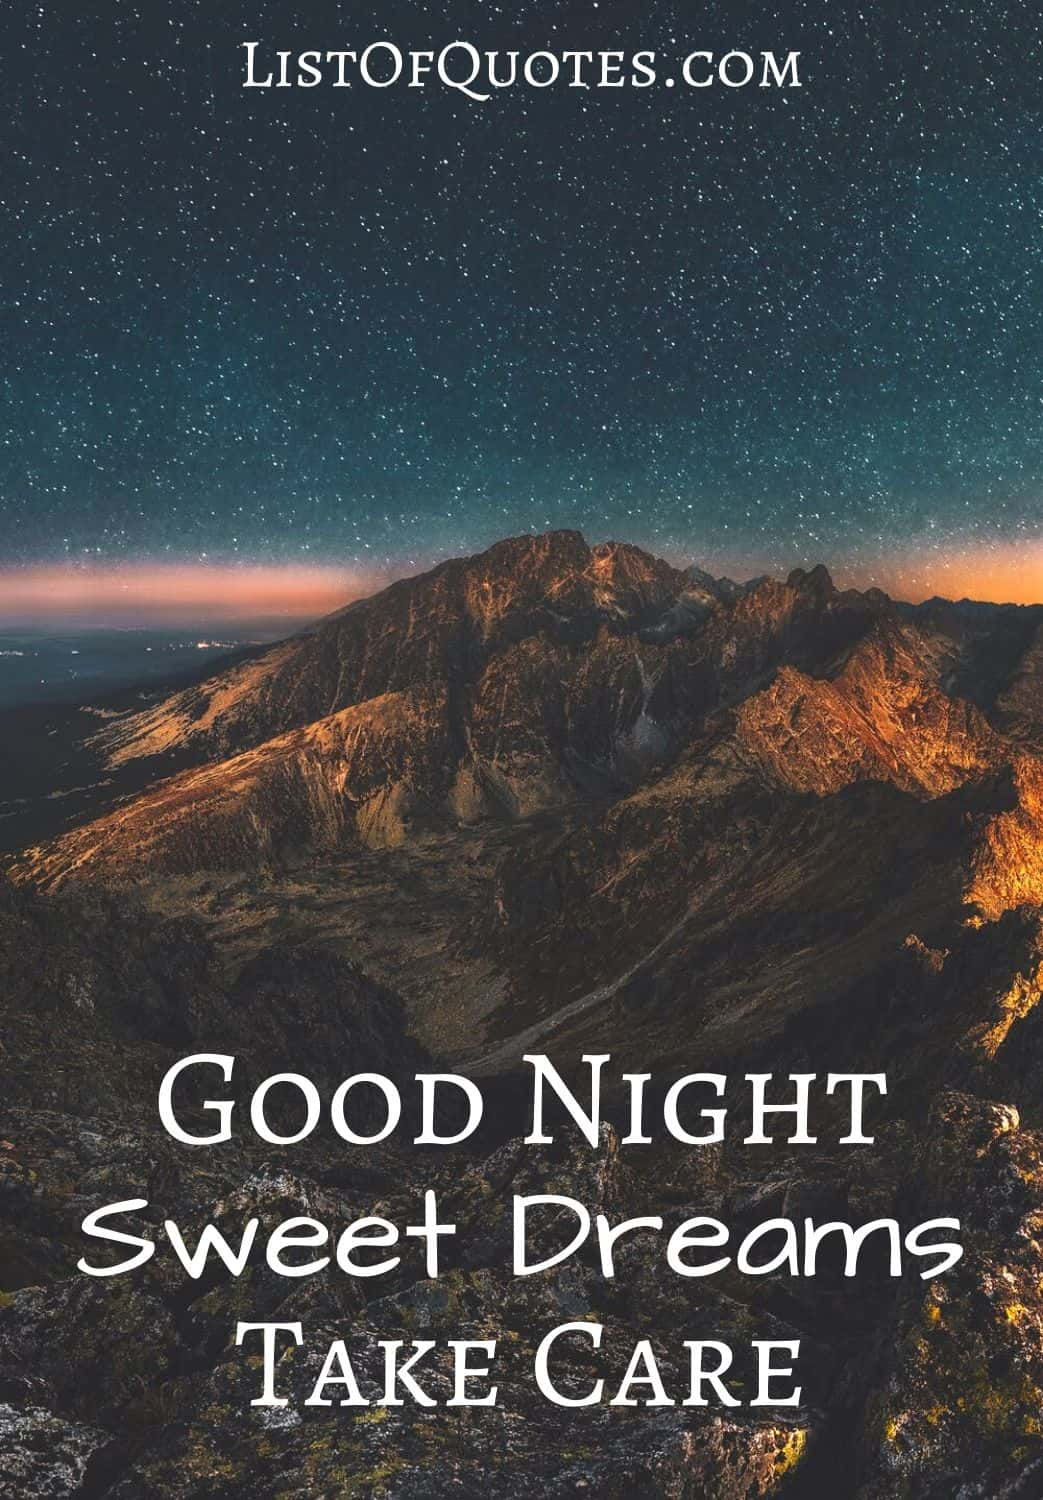 Good Night Quotes/Images/Wishes For WhatsApp, Facebook, Instagram Free Download